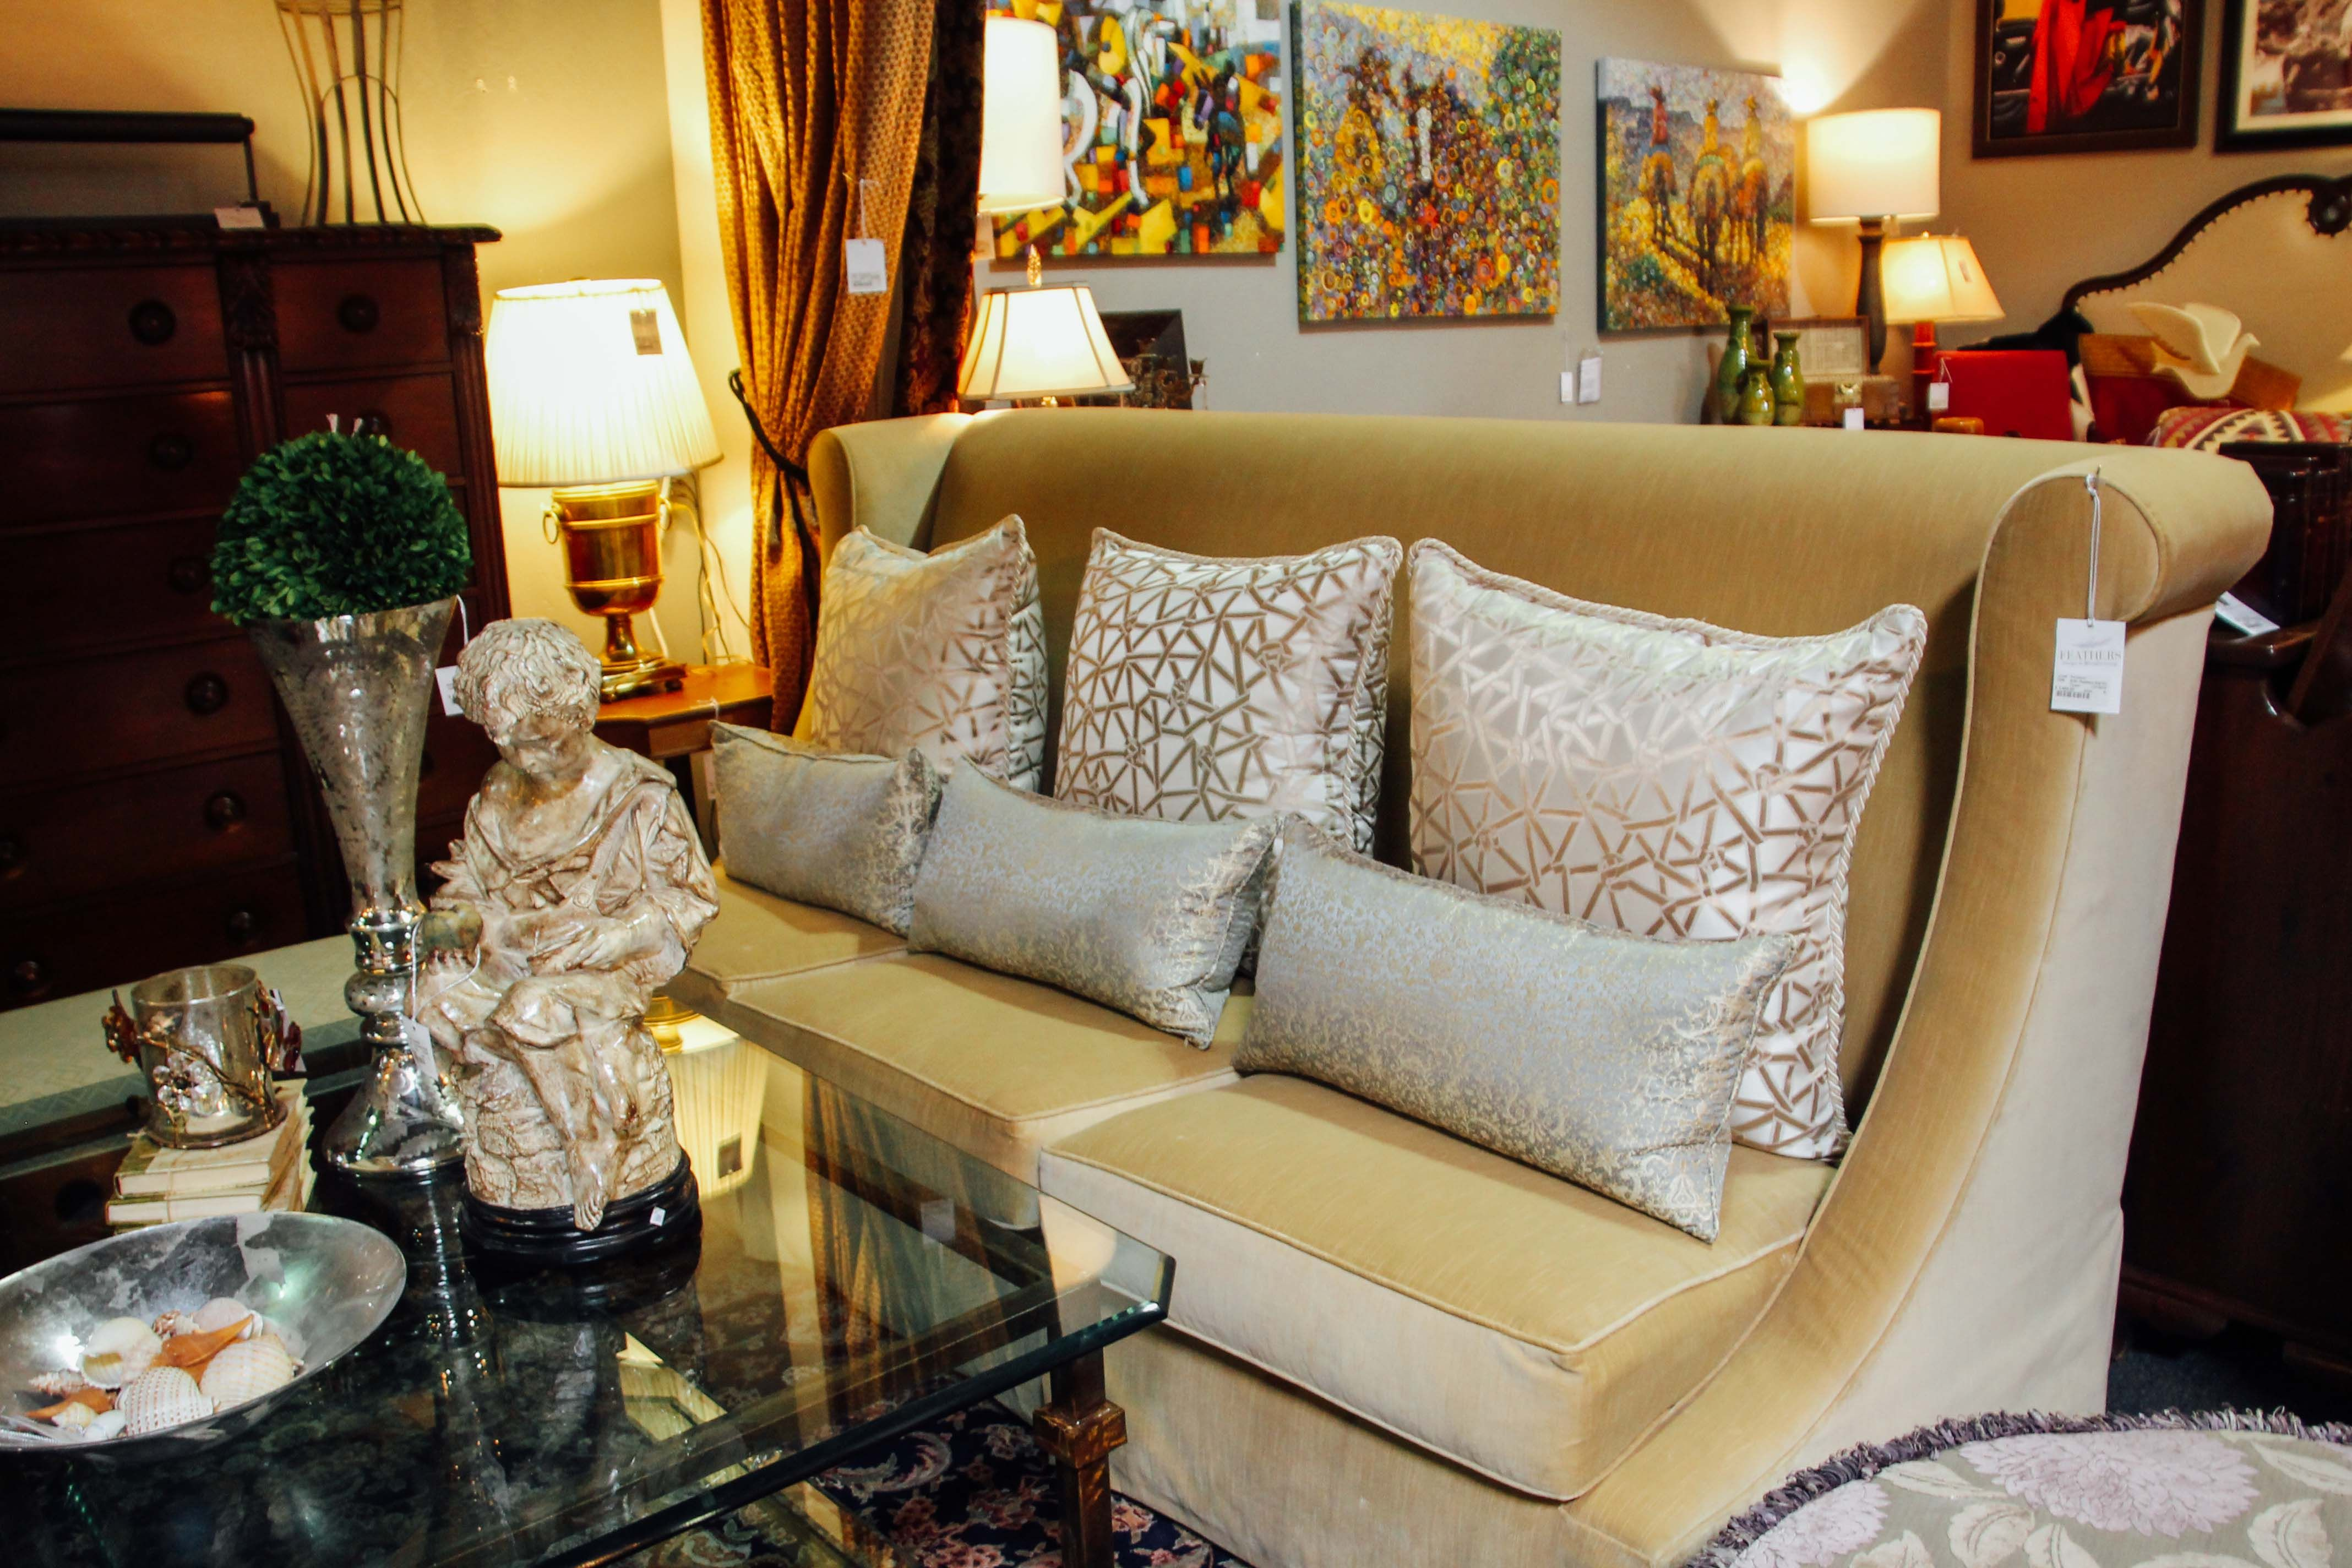 Amazing Scottsdale Furniture Consignment, Antiques, Artwork And Home Accessories.